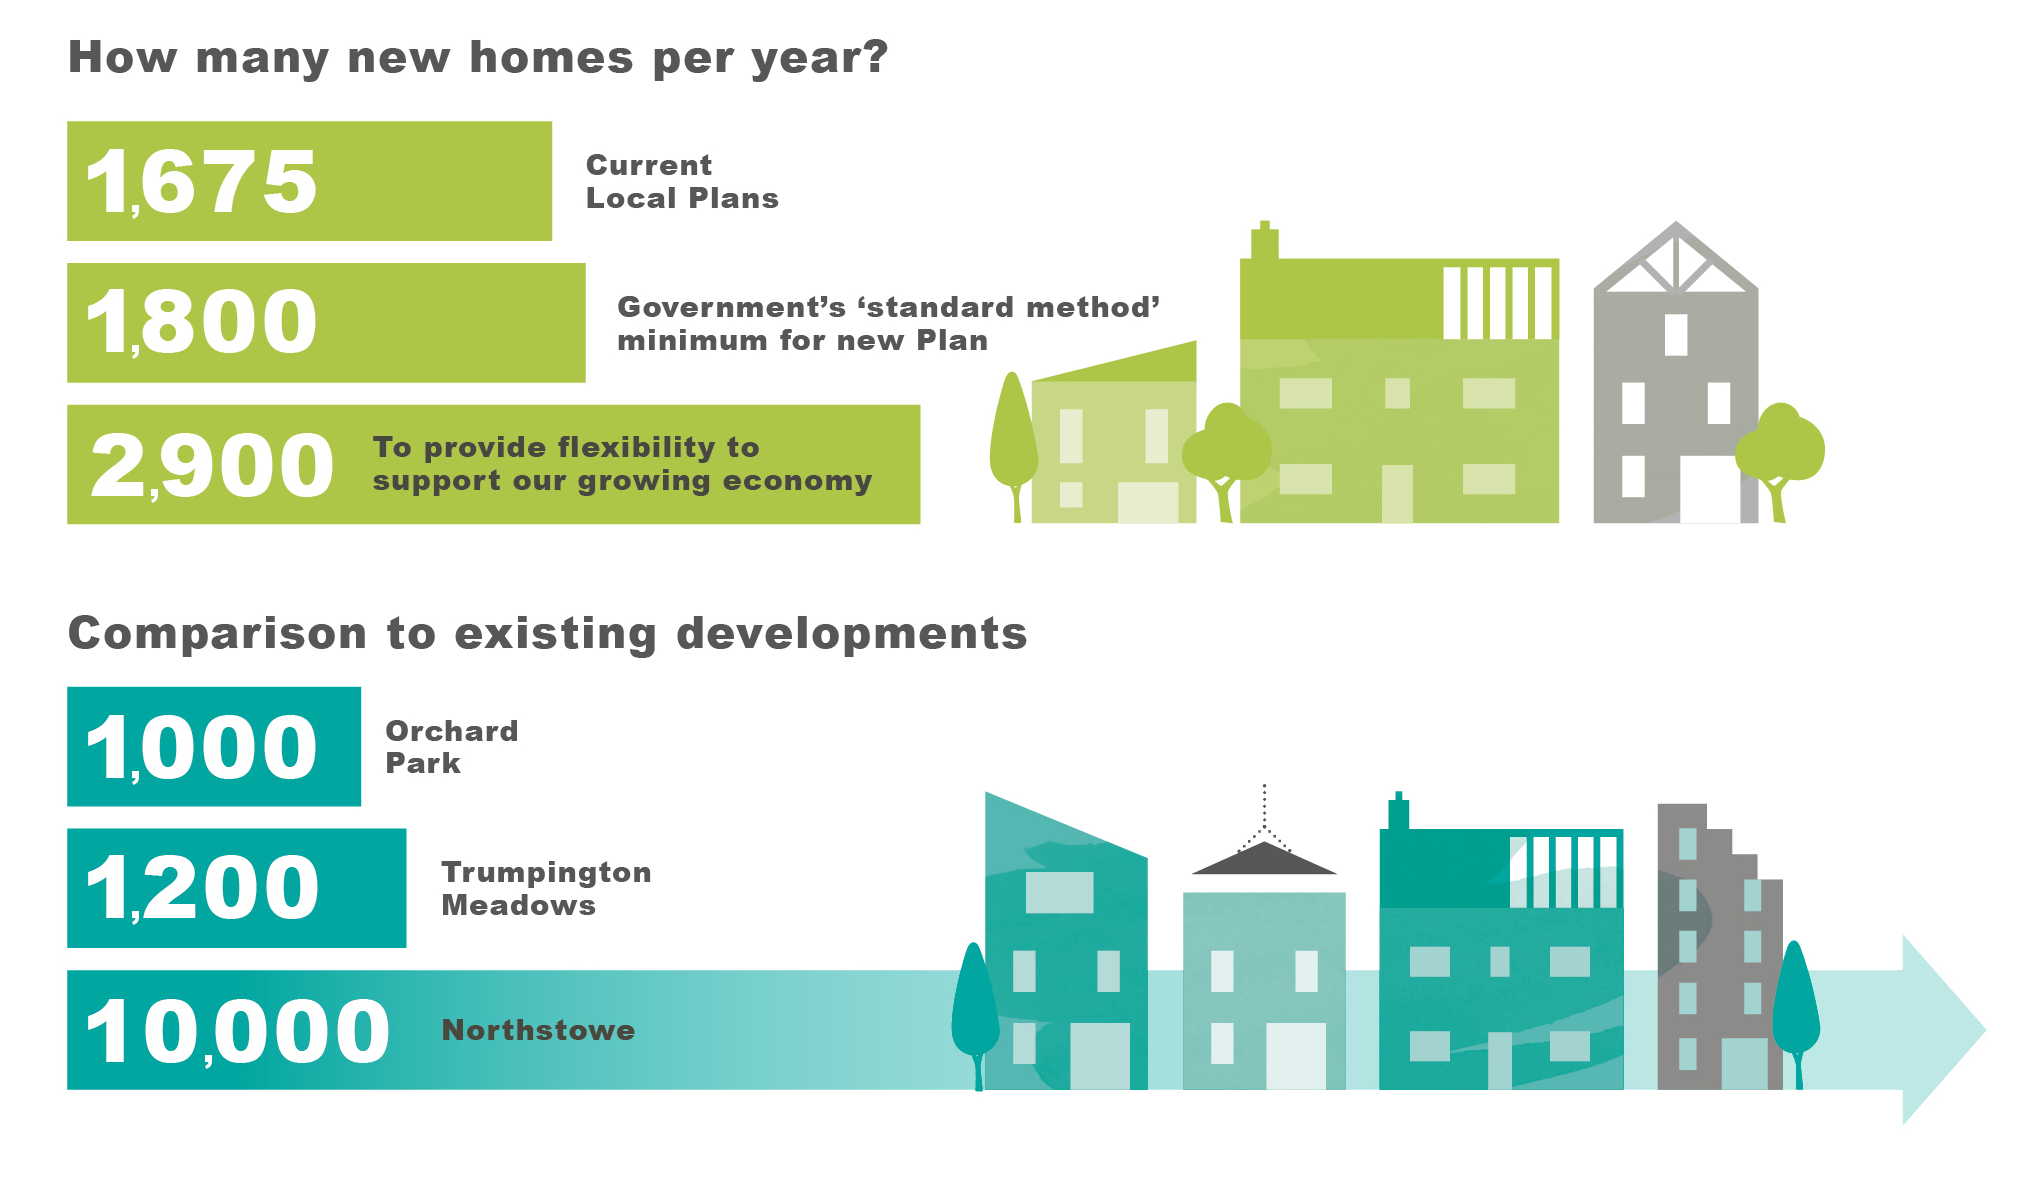 Infographic showing that there are 1,675 new homes per year planned in the adopted 2018 Local Plans; a target of 1,800 per year using the UK Government 'Standard Method'; and a potential need of 2,900  homes per year to provide flexibility to support our growing economy. By comparison Trumpington Meadows comprises 1200 homes, Orchard Park comprises 100 homes and Northstowe comprises 10,000 homes.